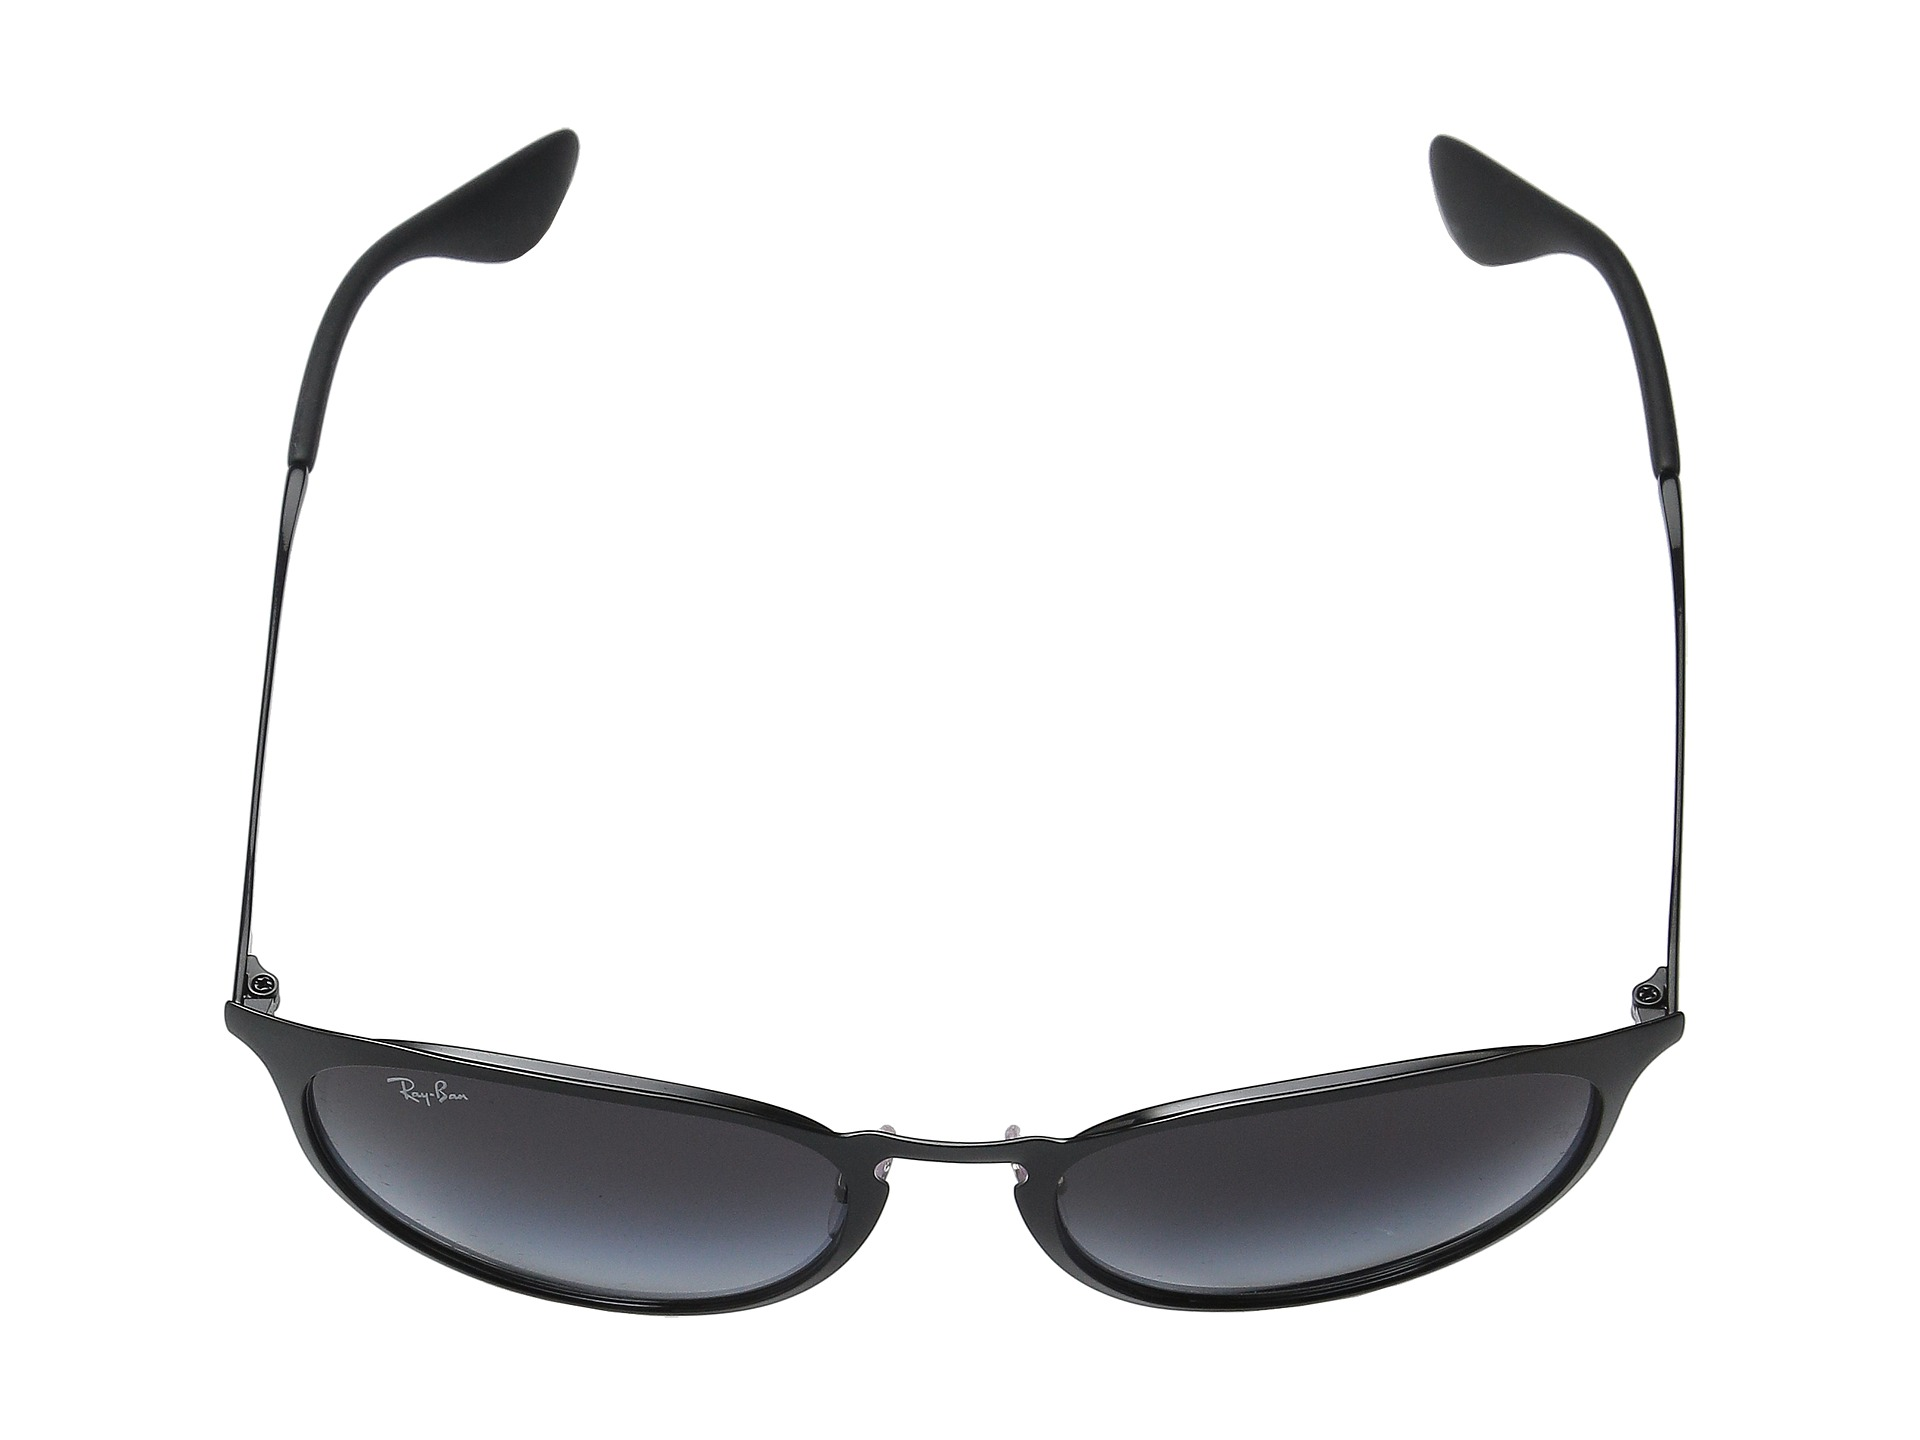 a33bbdd3709a Ray Ban Arm Cover. Jun20. Elderly friends. Ray Ban Sunglasses Arm Covers